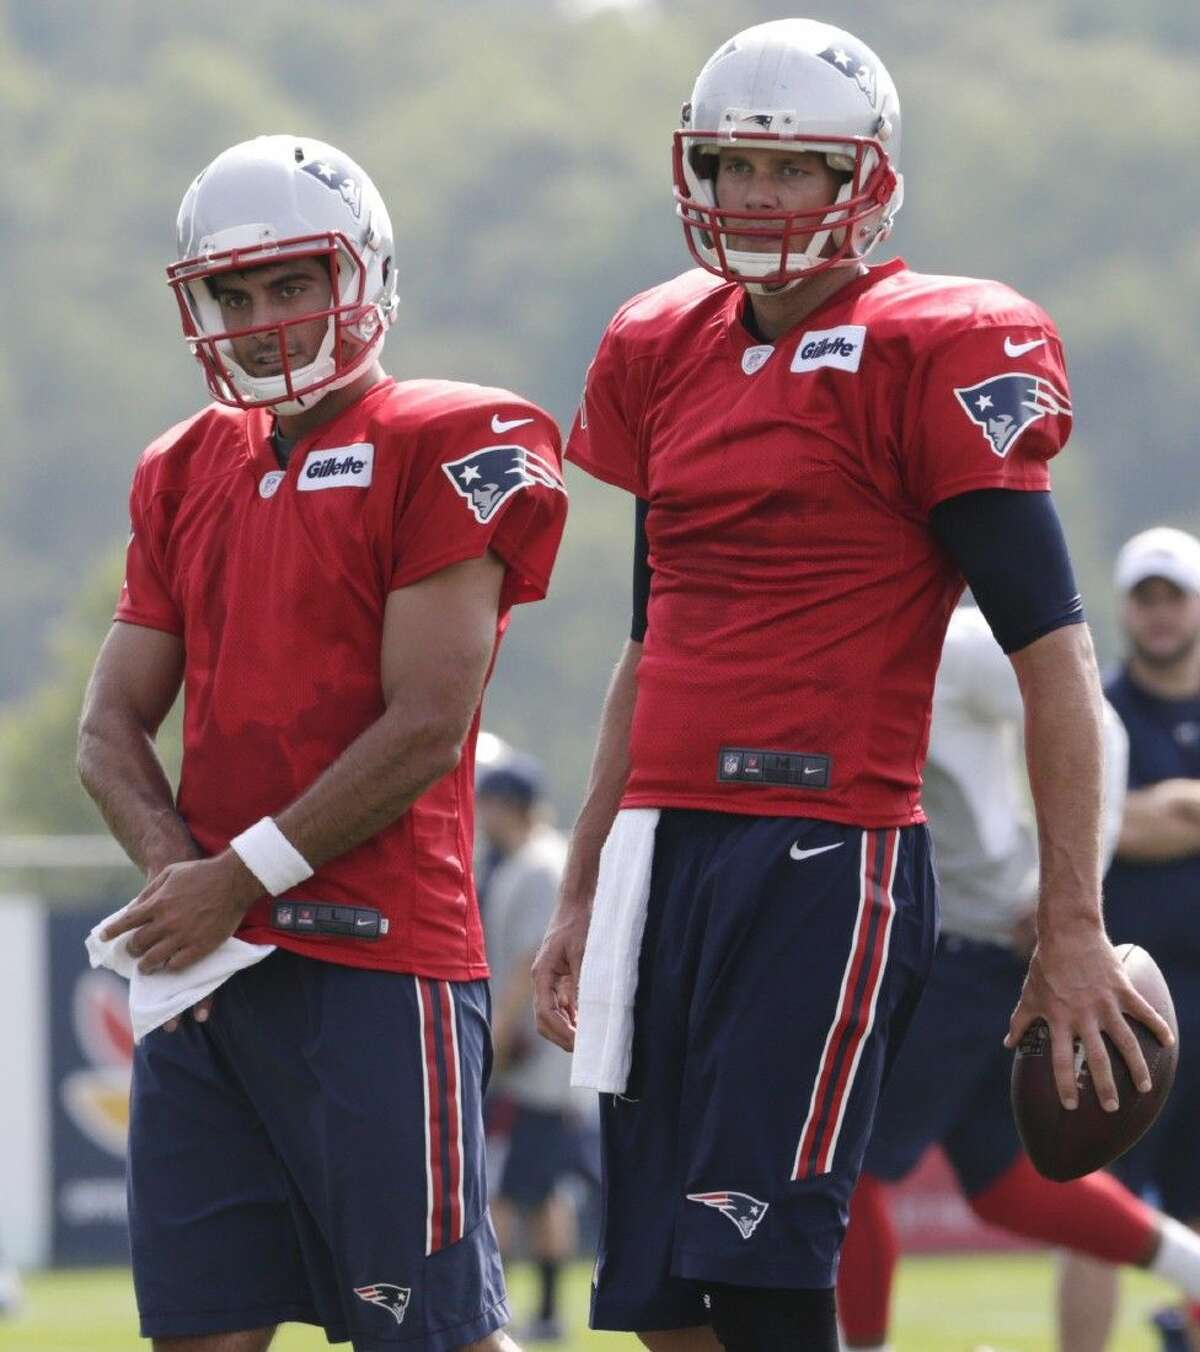 New England Patriots quarterback Tom Brady, right, and Jimmy Garoppolo pause for a break during an NFL football training camp in Foxborough, Mass., Thursday.